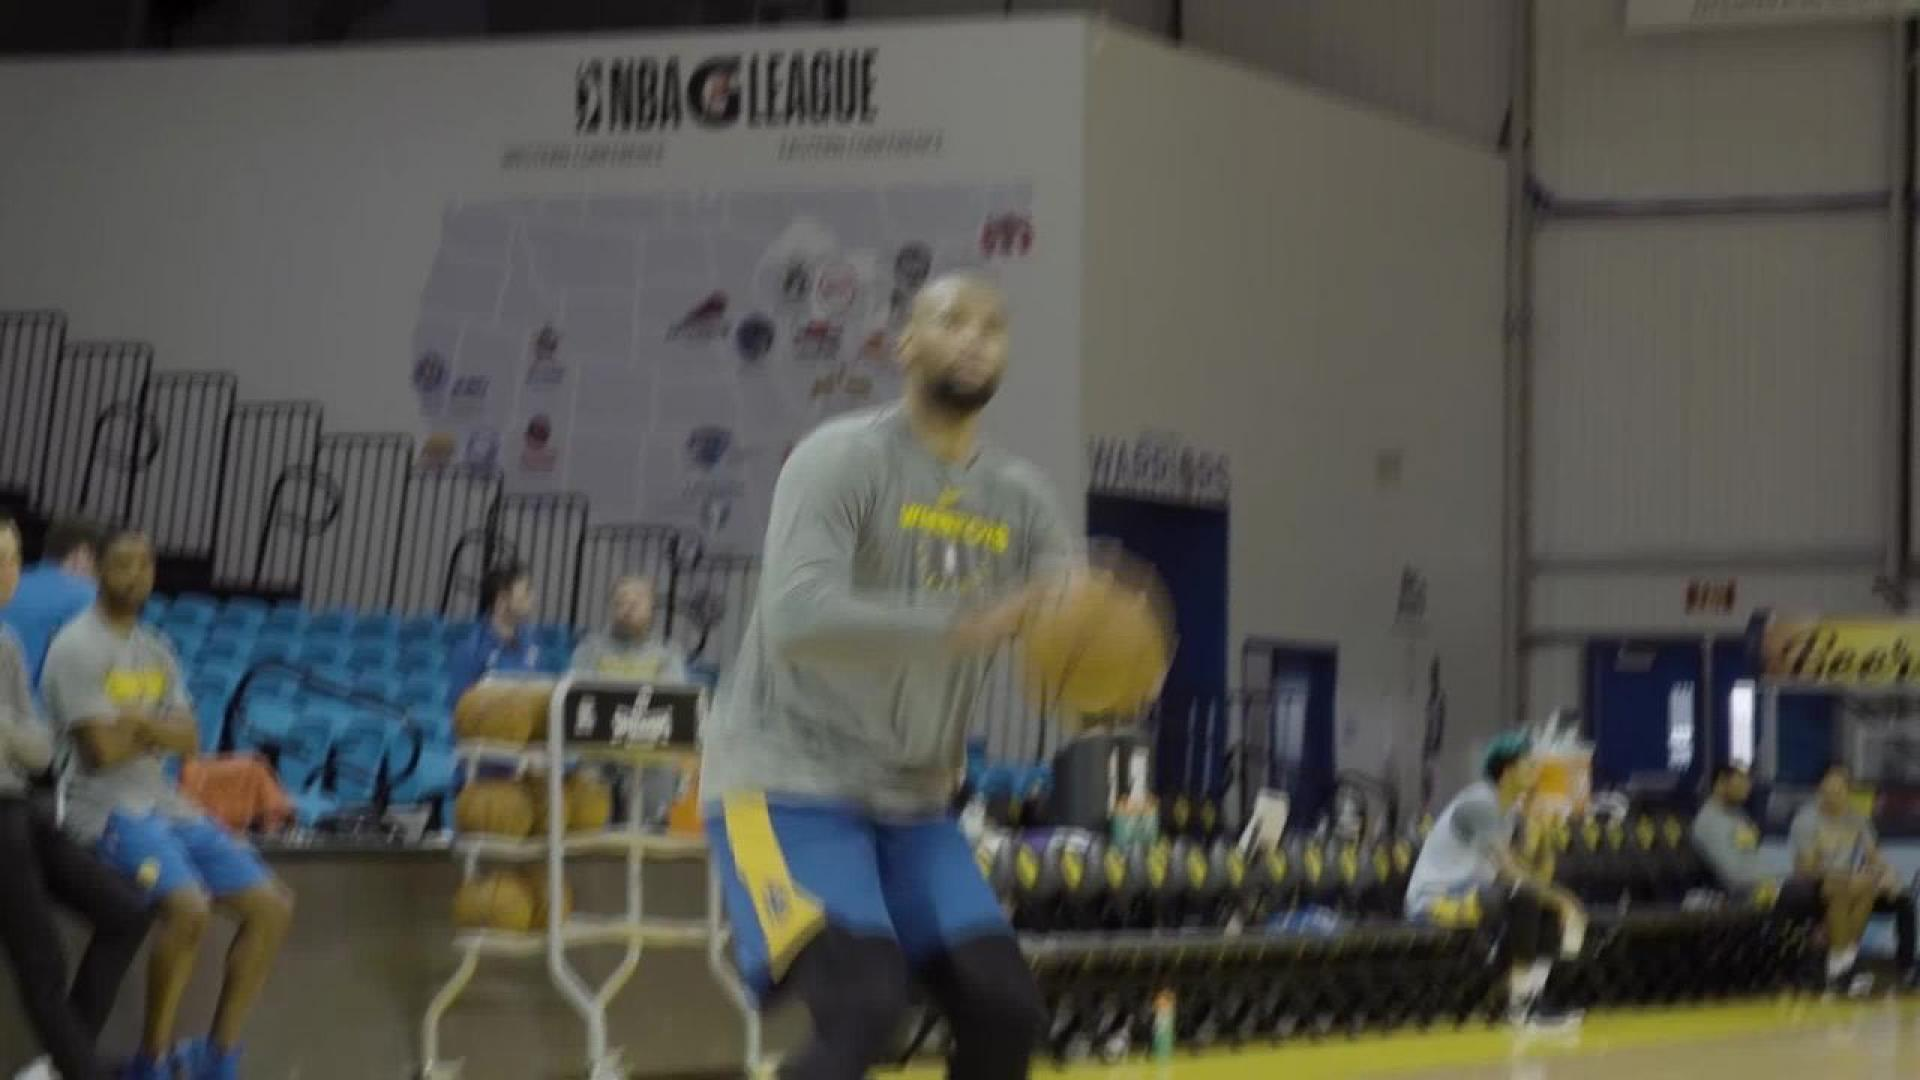 Meubel Outlet Stolwijk : Demarcus cousins to practice with warriors g league affiliate nba.com